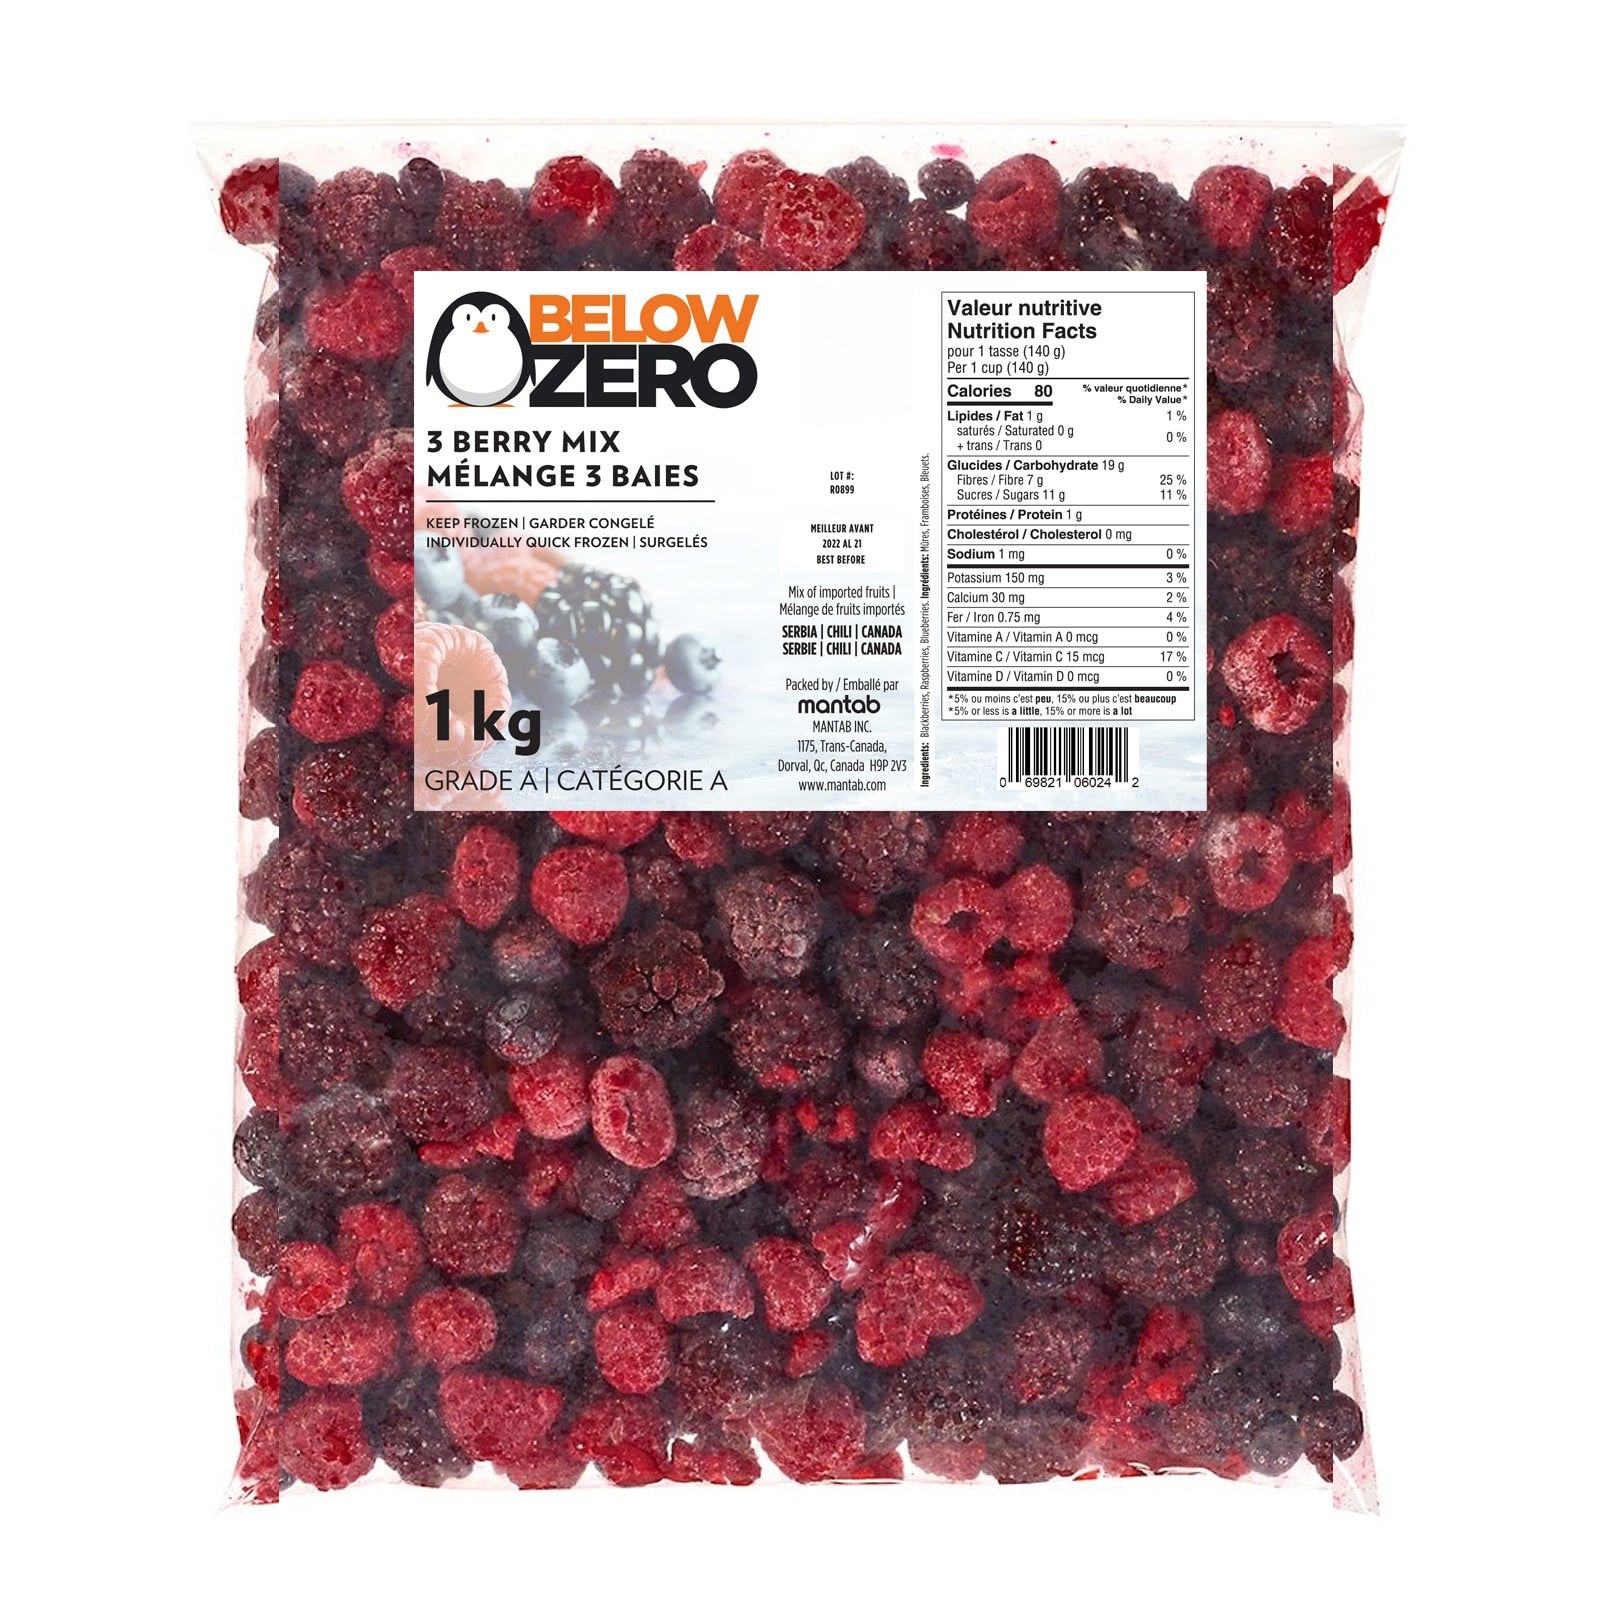 BELOW ZERO 3 berry mix